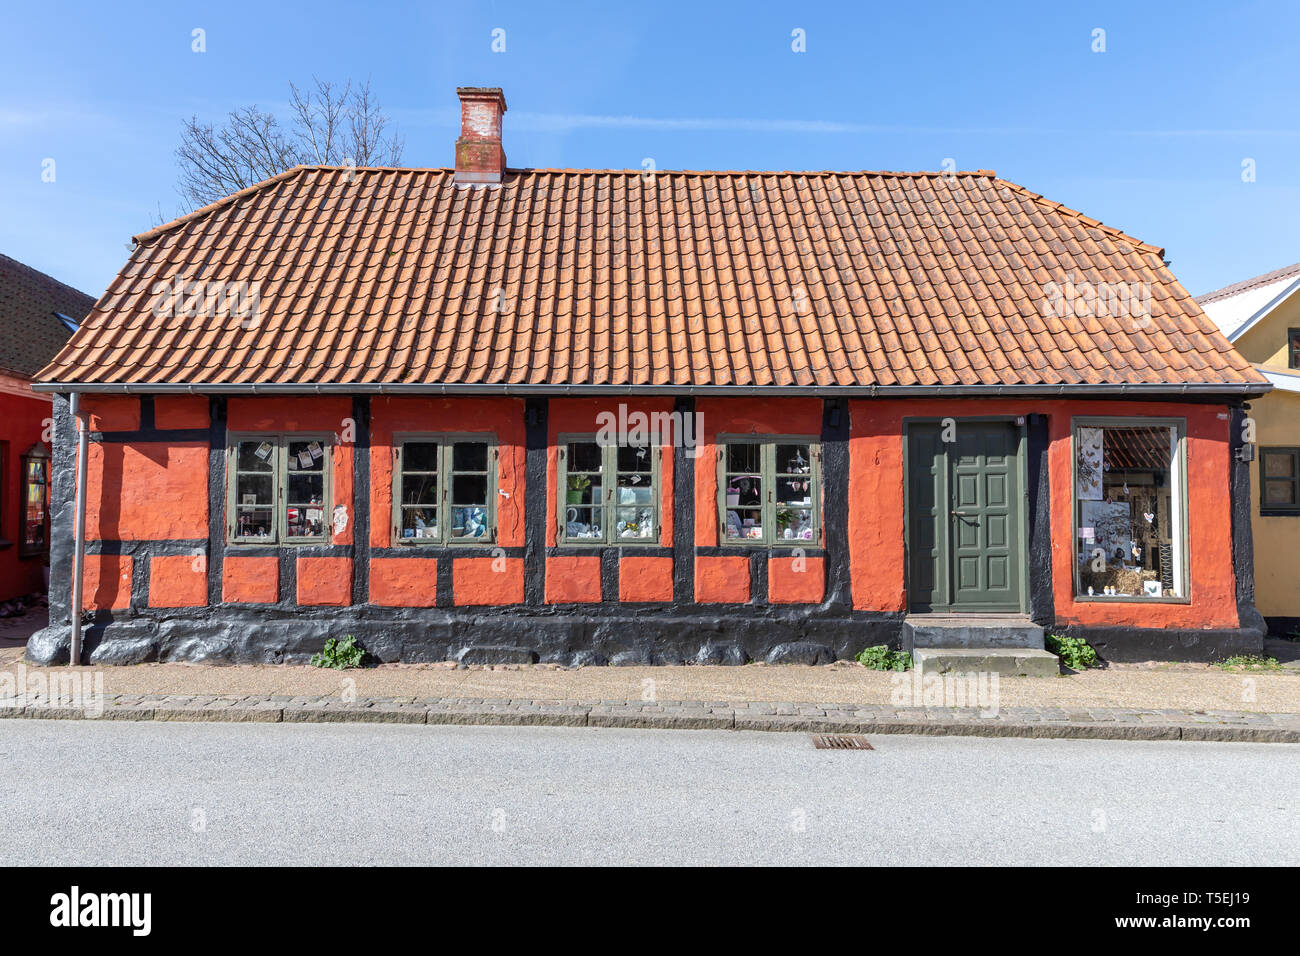 Old red and black half-timbered house in Algade, Saeby, in North Jutland, Denmark Stock Photo